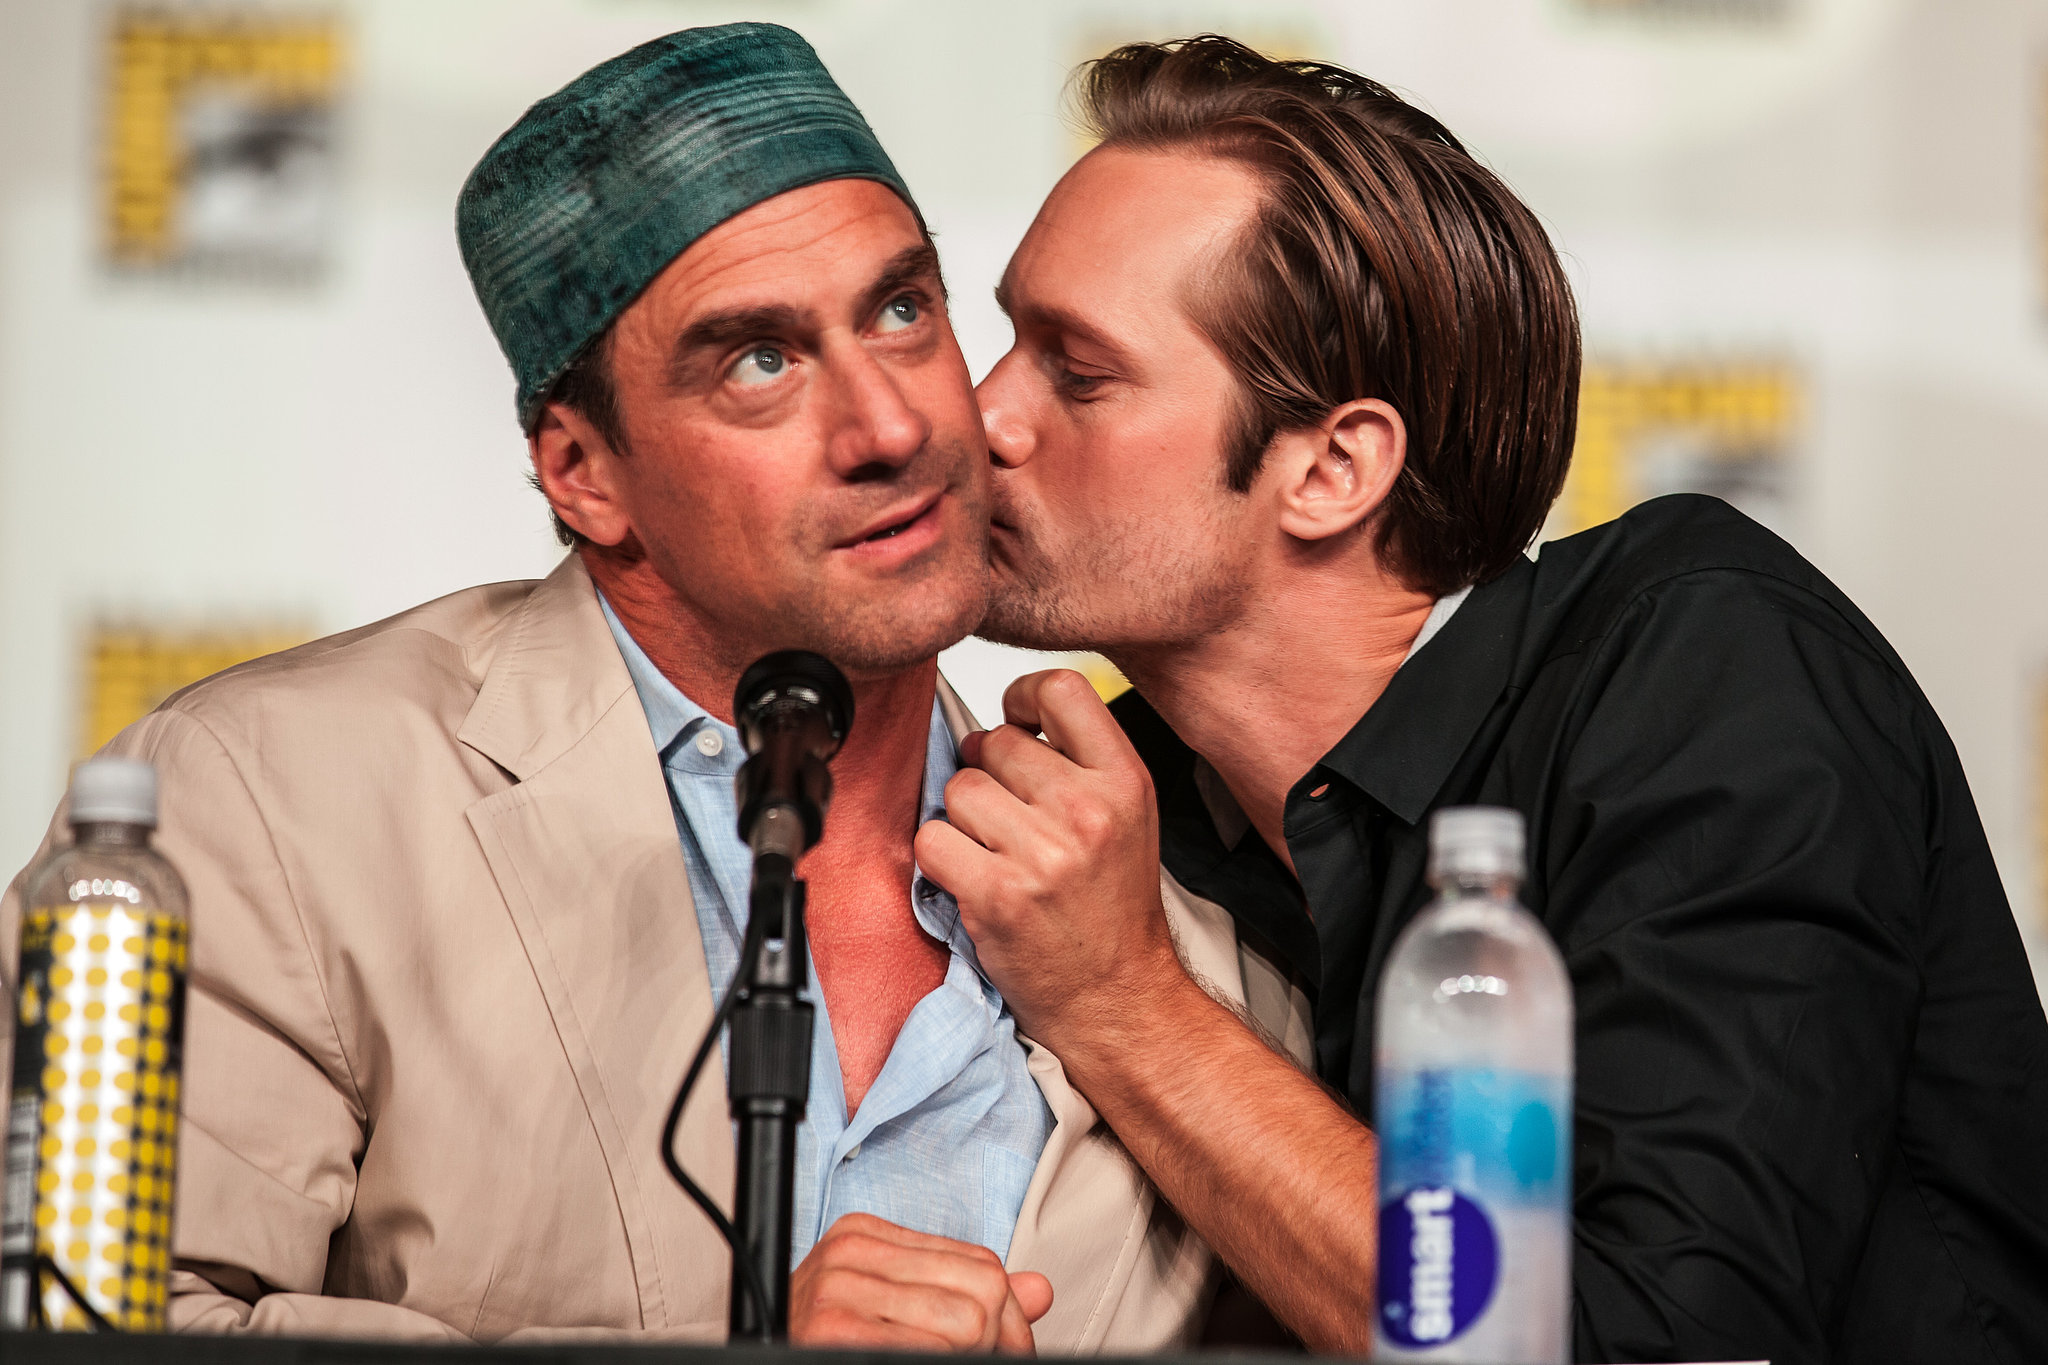 Alexander Skarsgard planted a kiss on Chris Meloni's cheek at the True Blood panel in 2012.